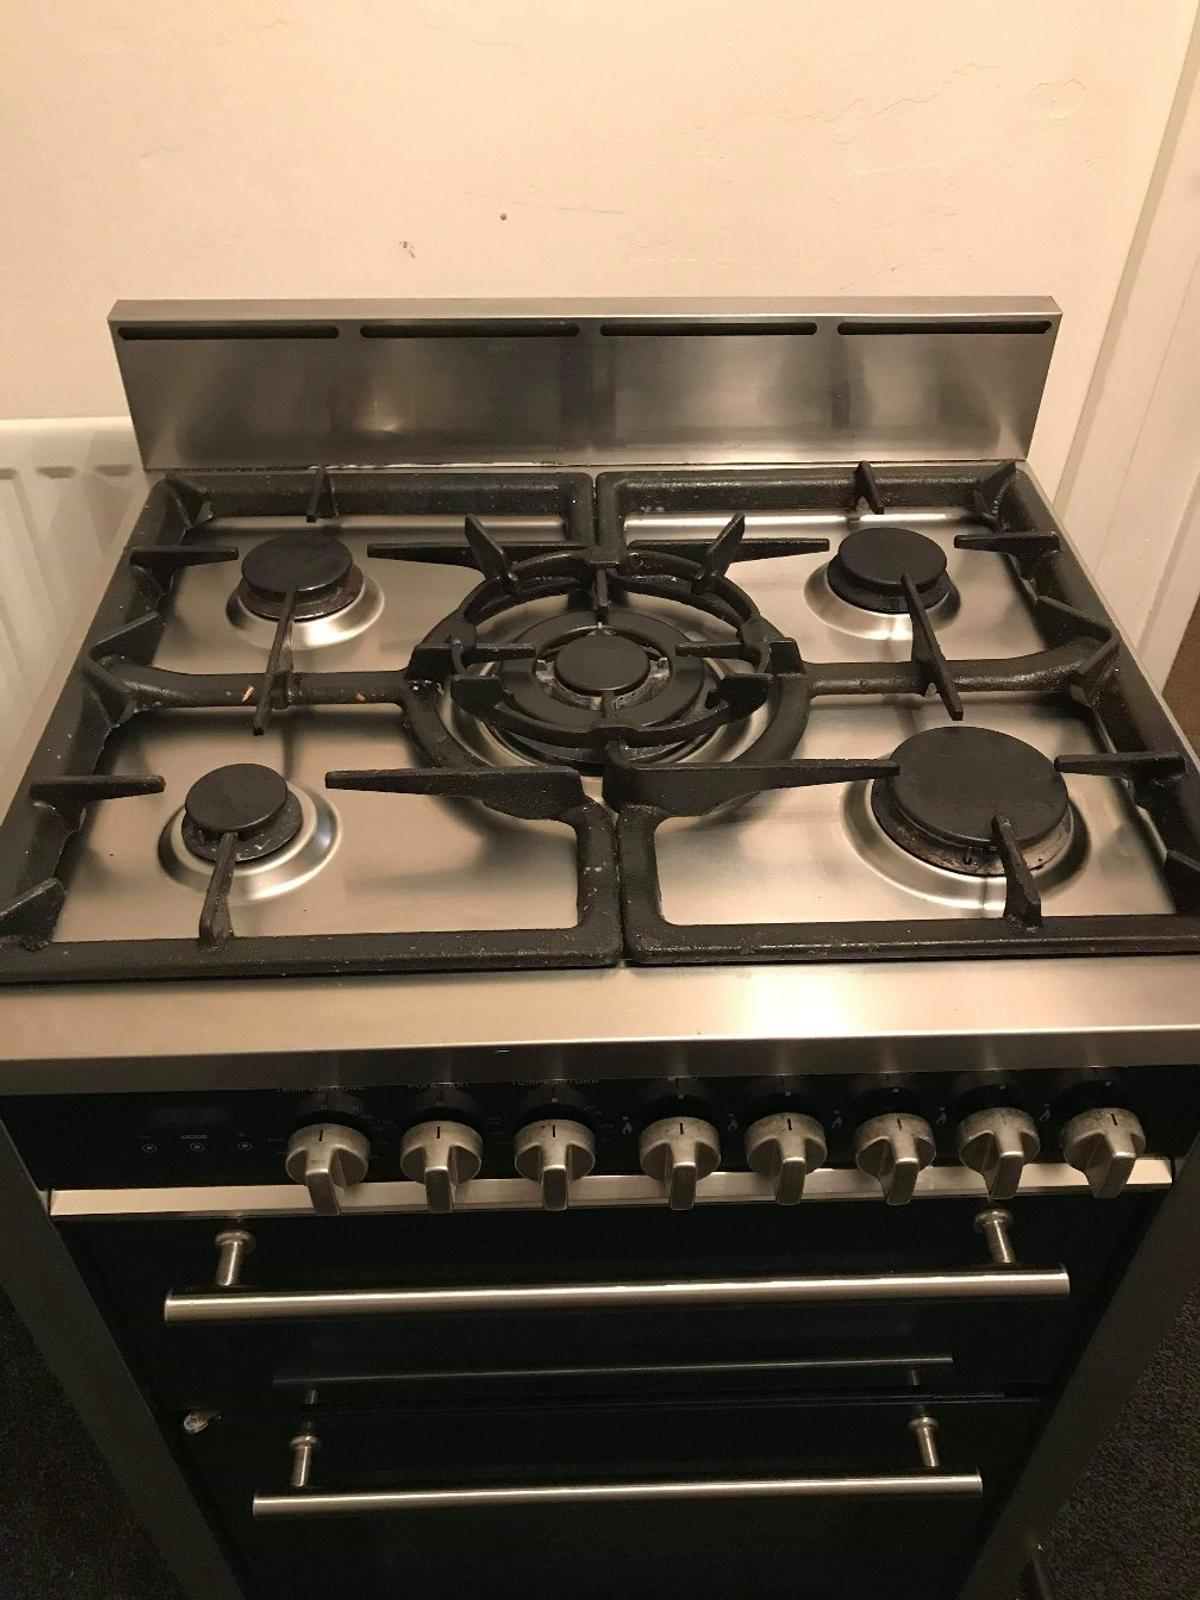 kenwood dual cooker oven is spotless grill needs a deep clean hence the cheap price need it out the way ASAP hence the cheap price aswel